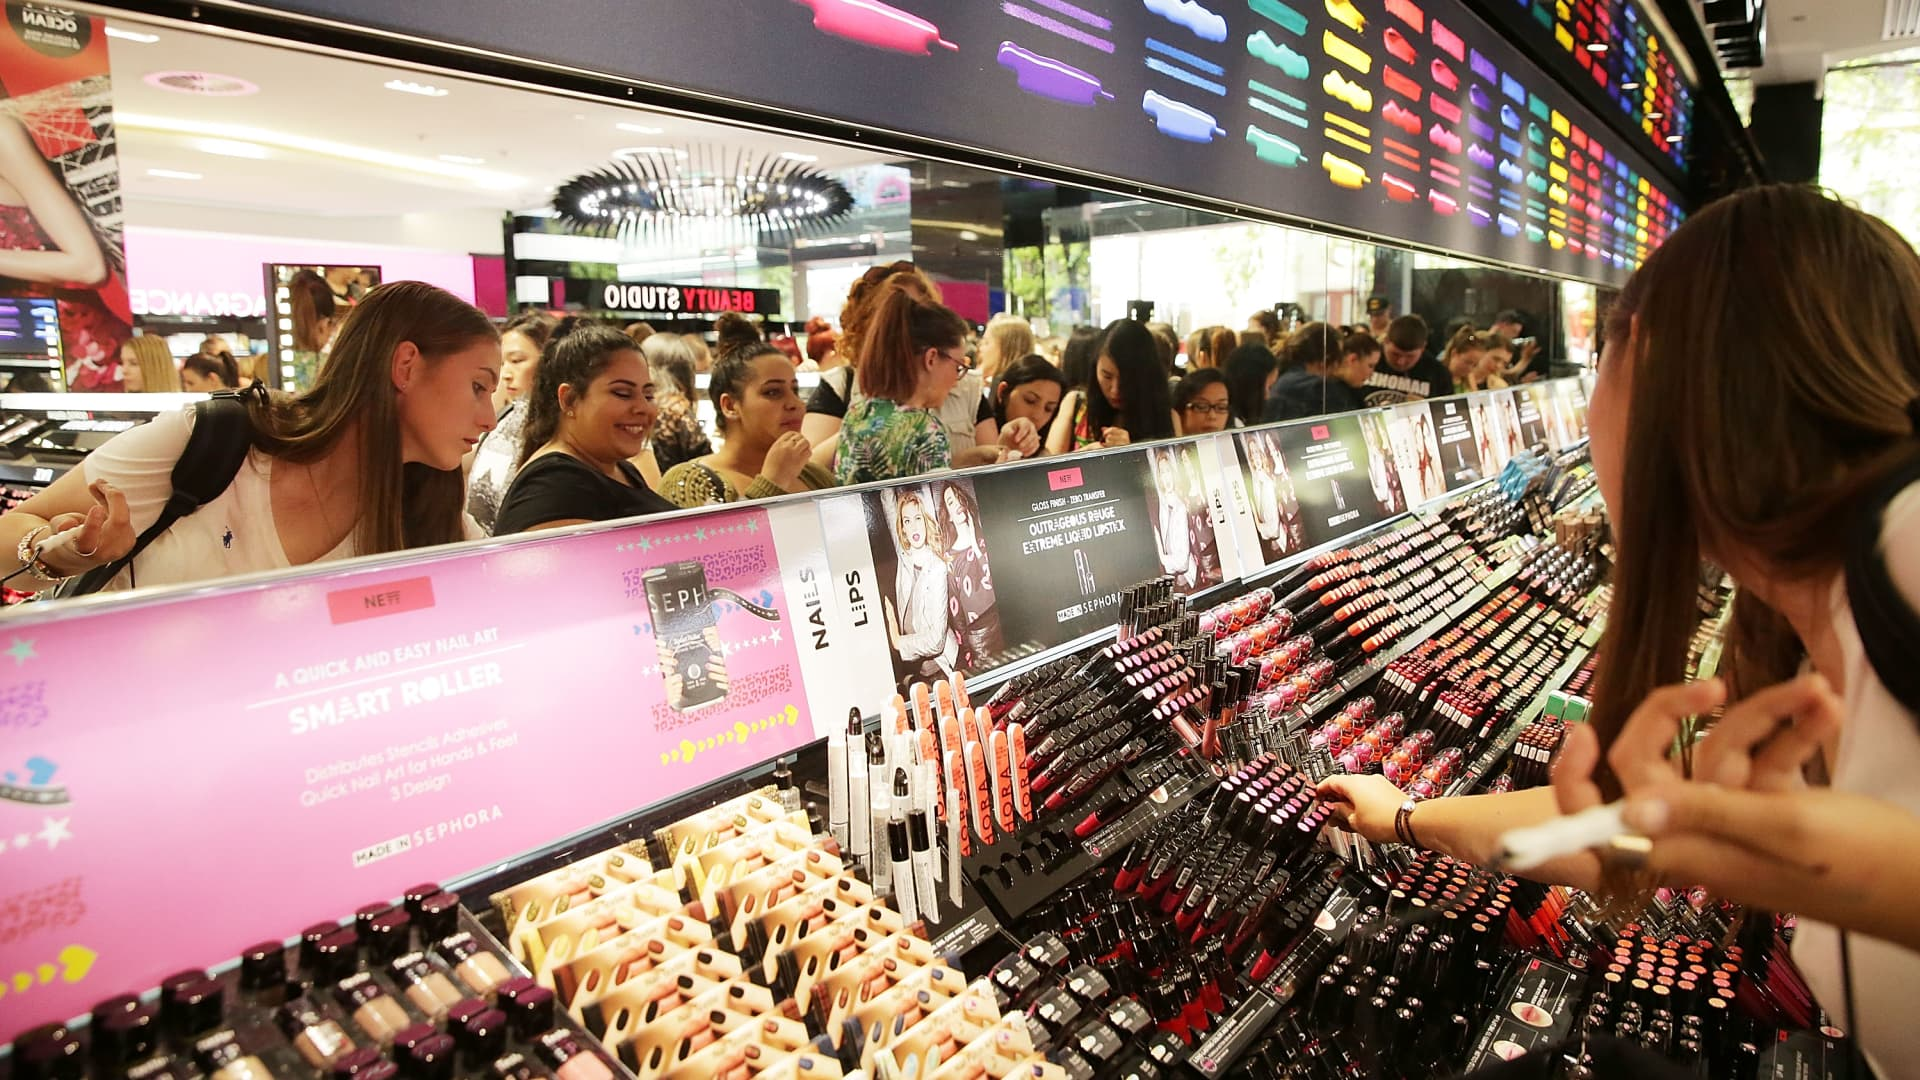 Customers shop for makeup at a Sephora store.